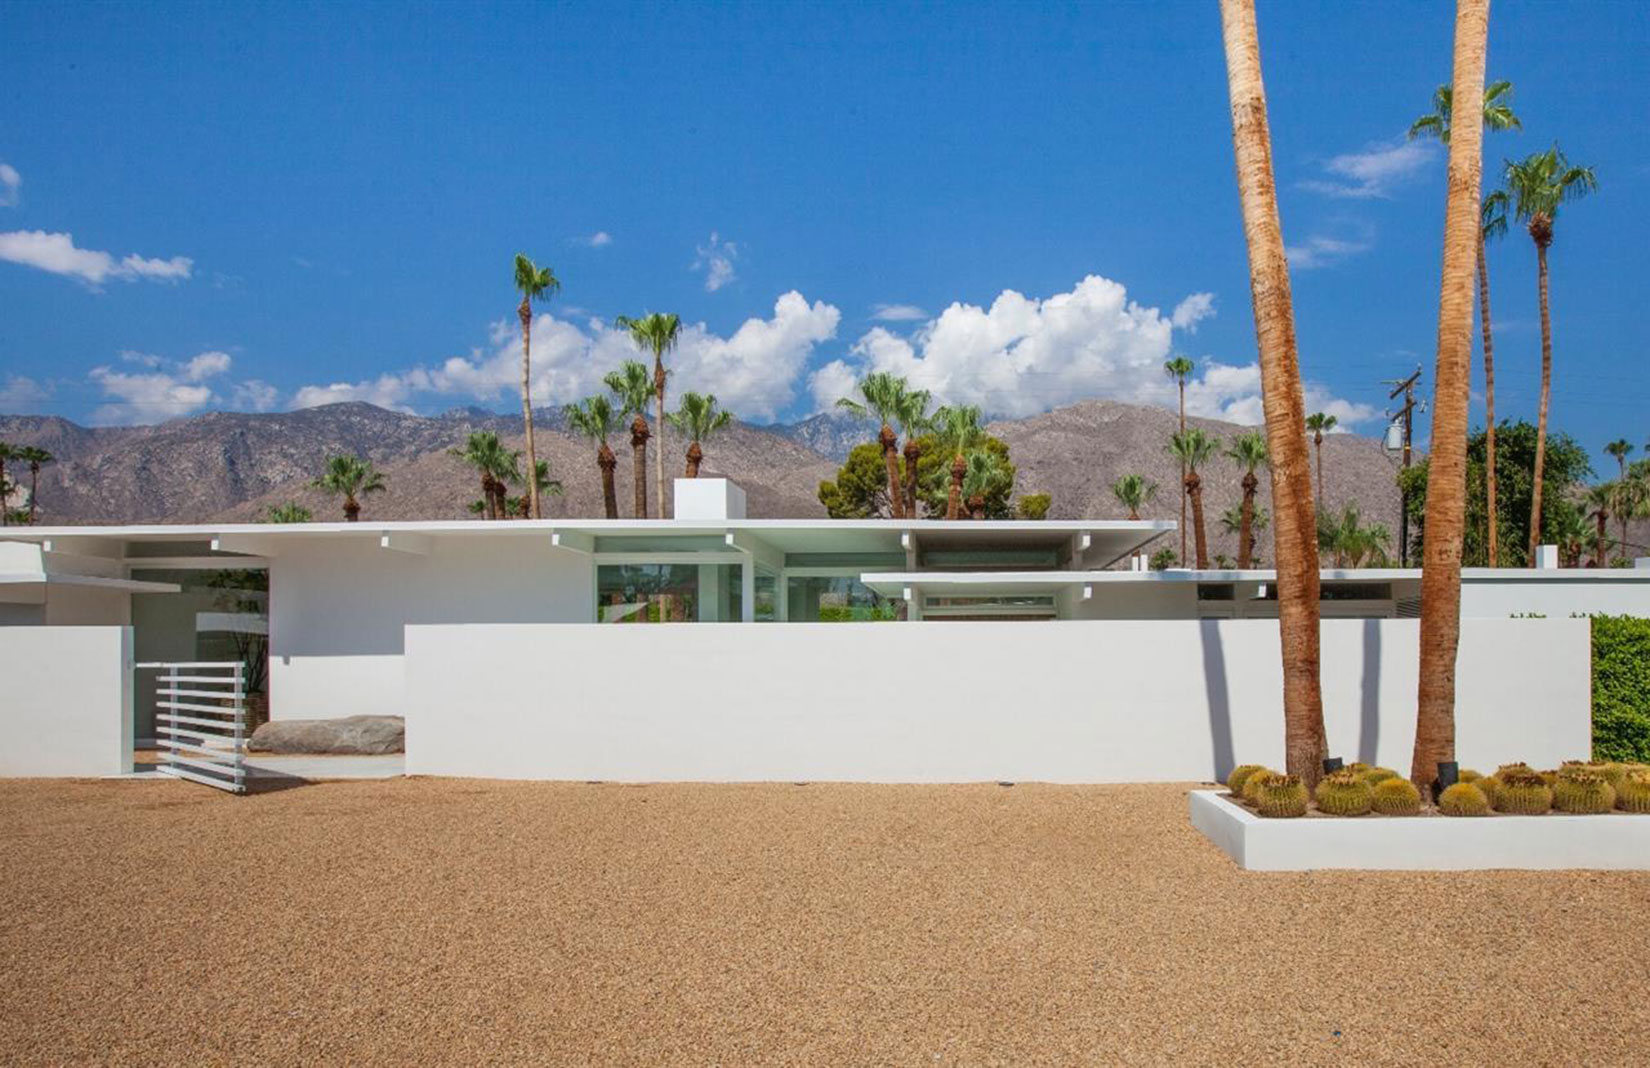 Hot property 5 homes that offer a taste of oscar glory for Property in palm springs